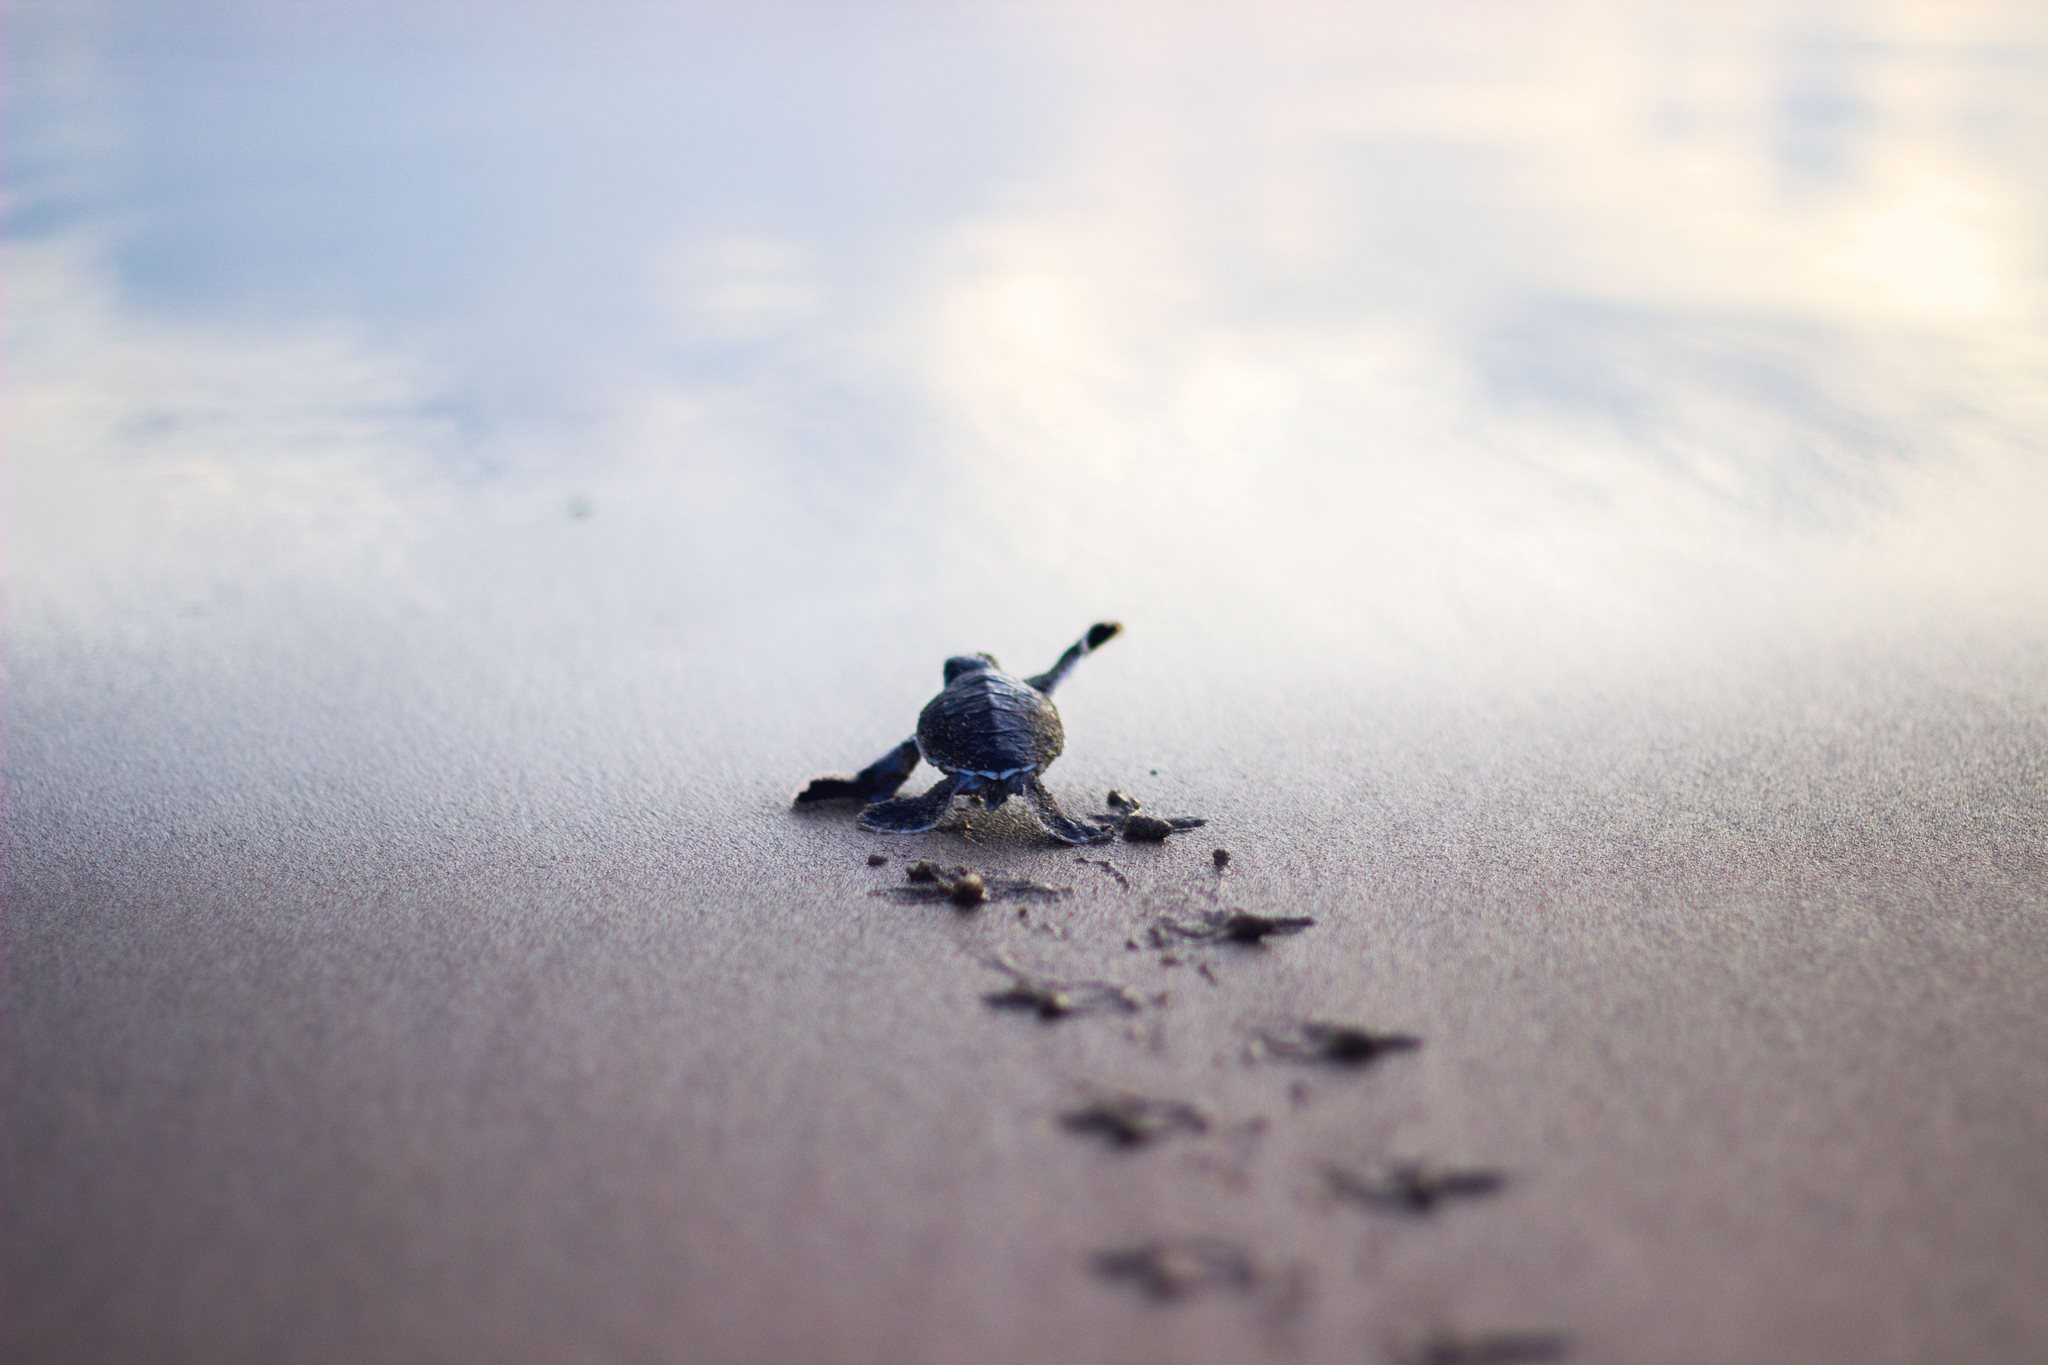 Baby turtle running to the safety of the sea shore pics 2048x1365